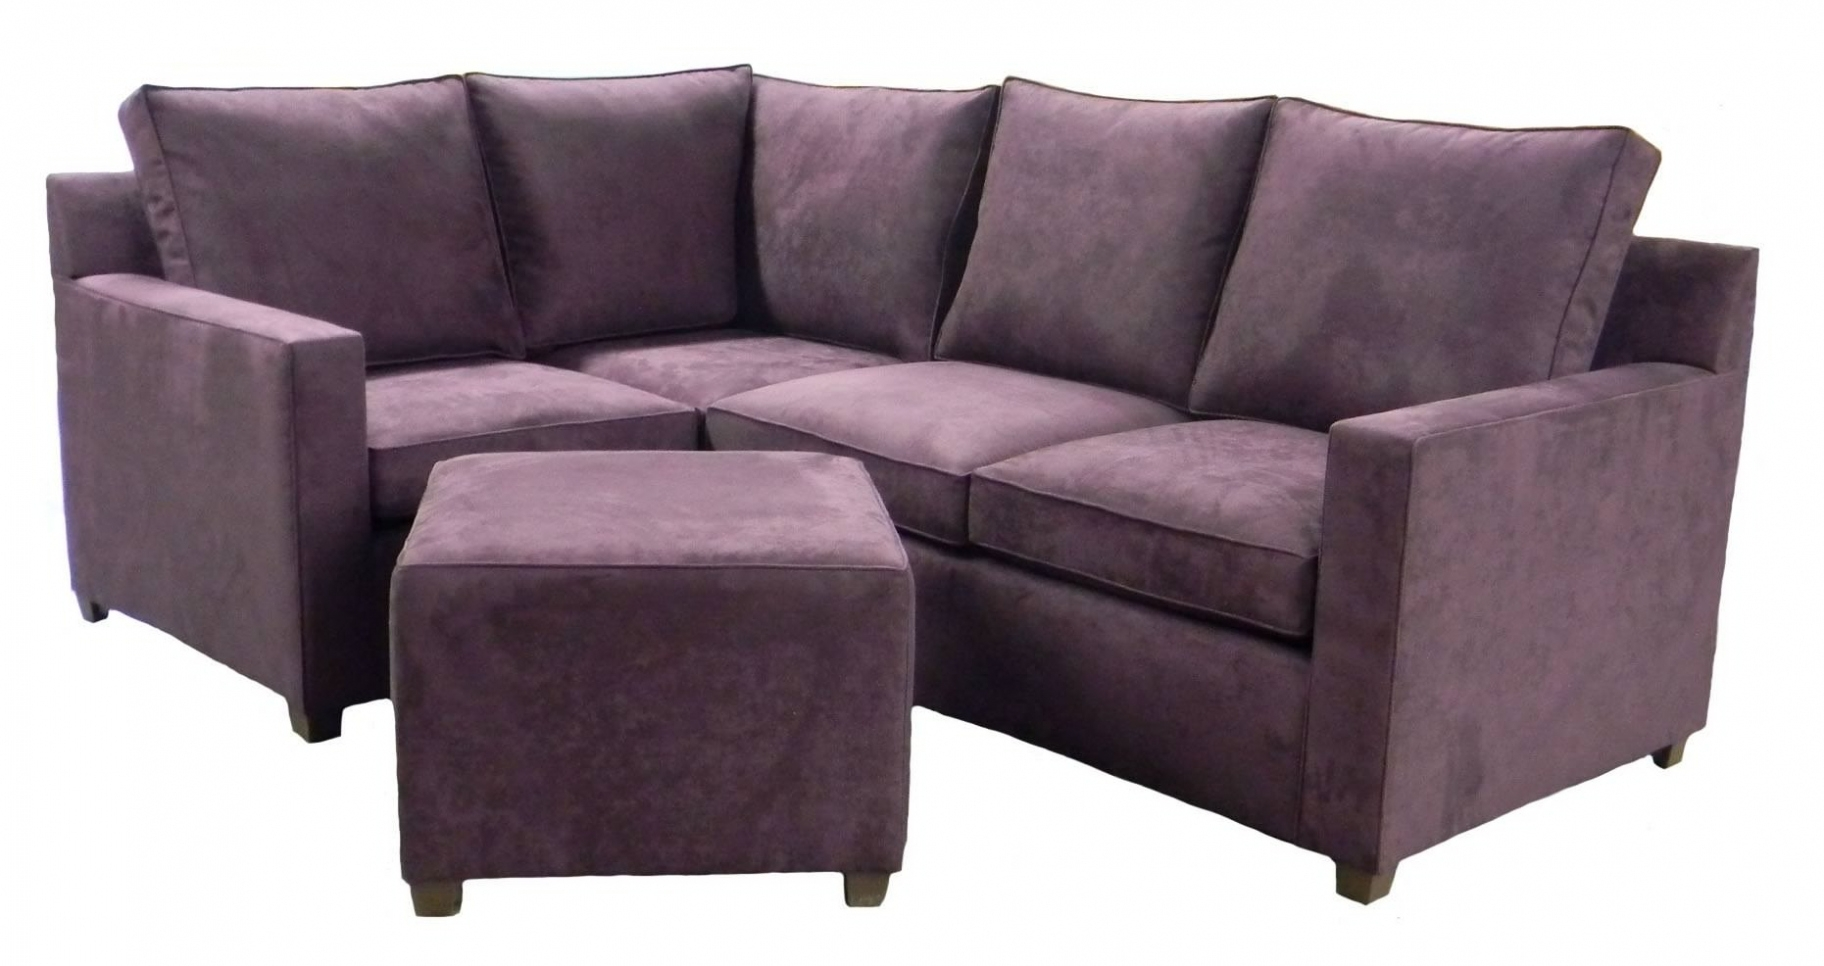 2019 popular apartment size sofas - Apartment size sectional couch ...